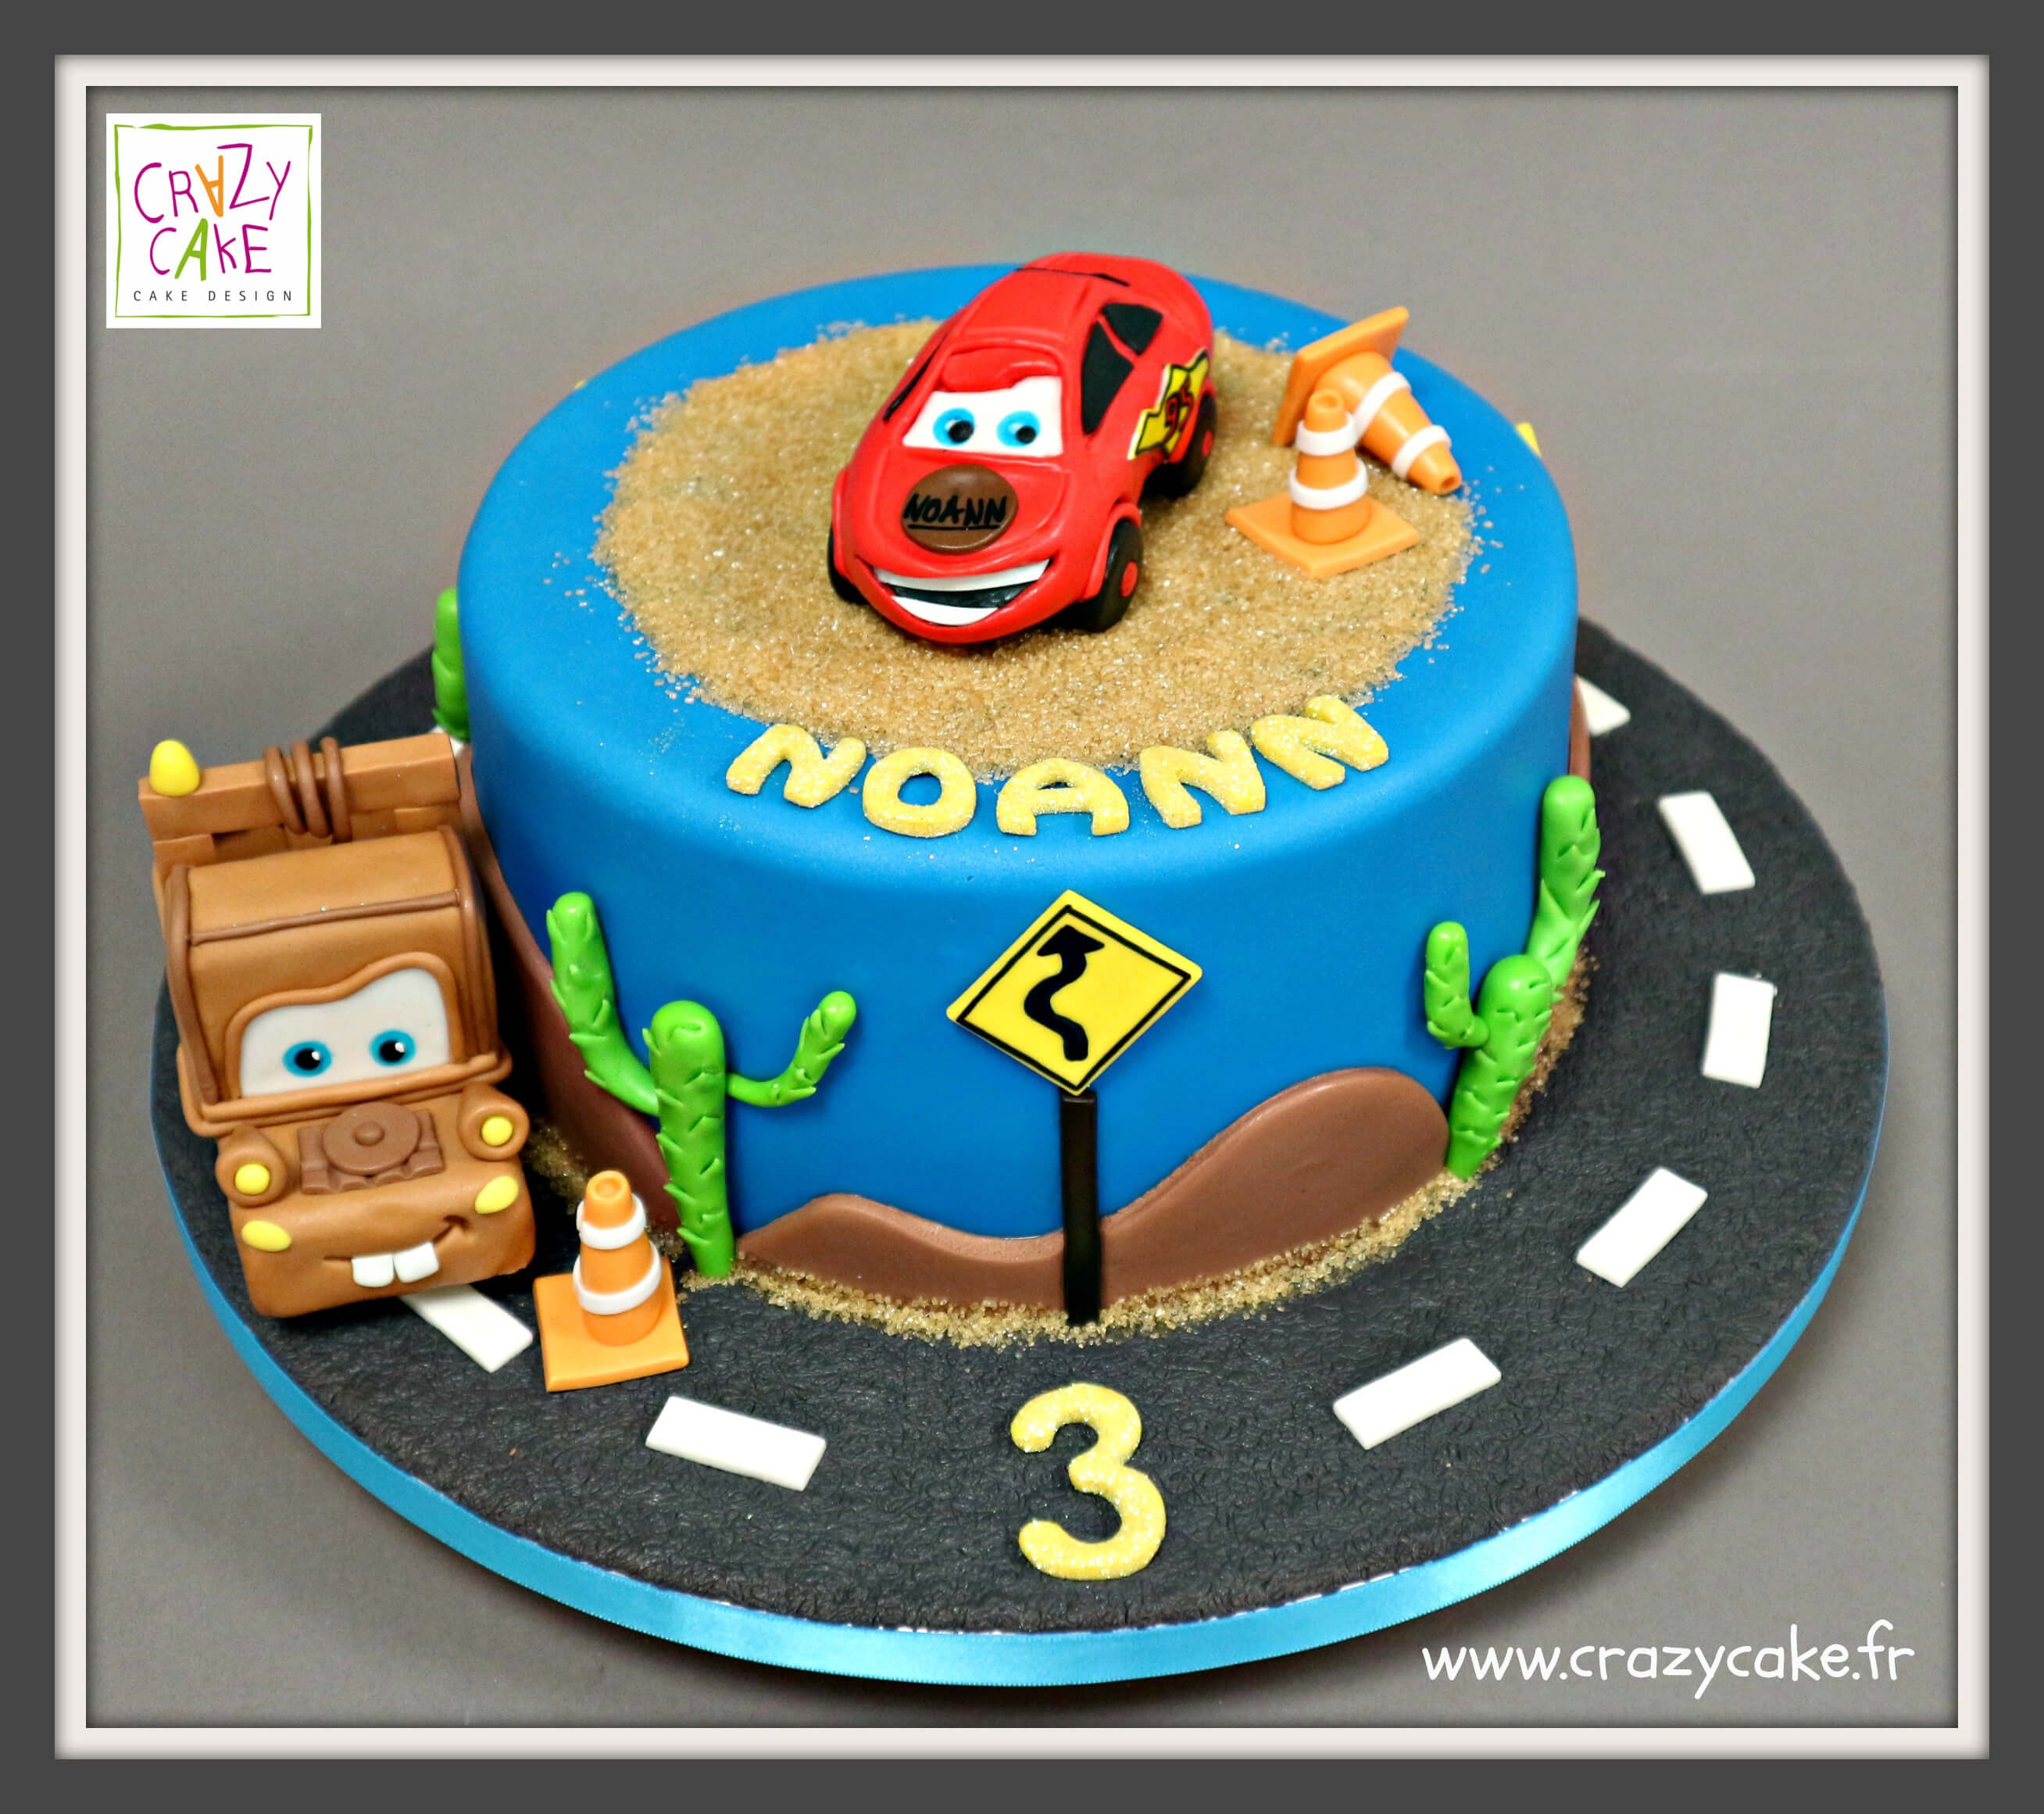 gateau anniversaire cars related keywords gateau anniversaire cars long tail keywords keywordsking. Black Bedroom Furniture Sets. Home Design Ideas